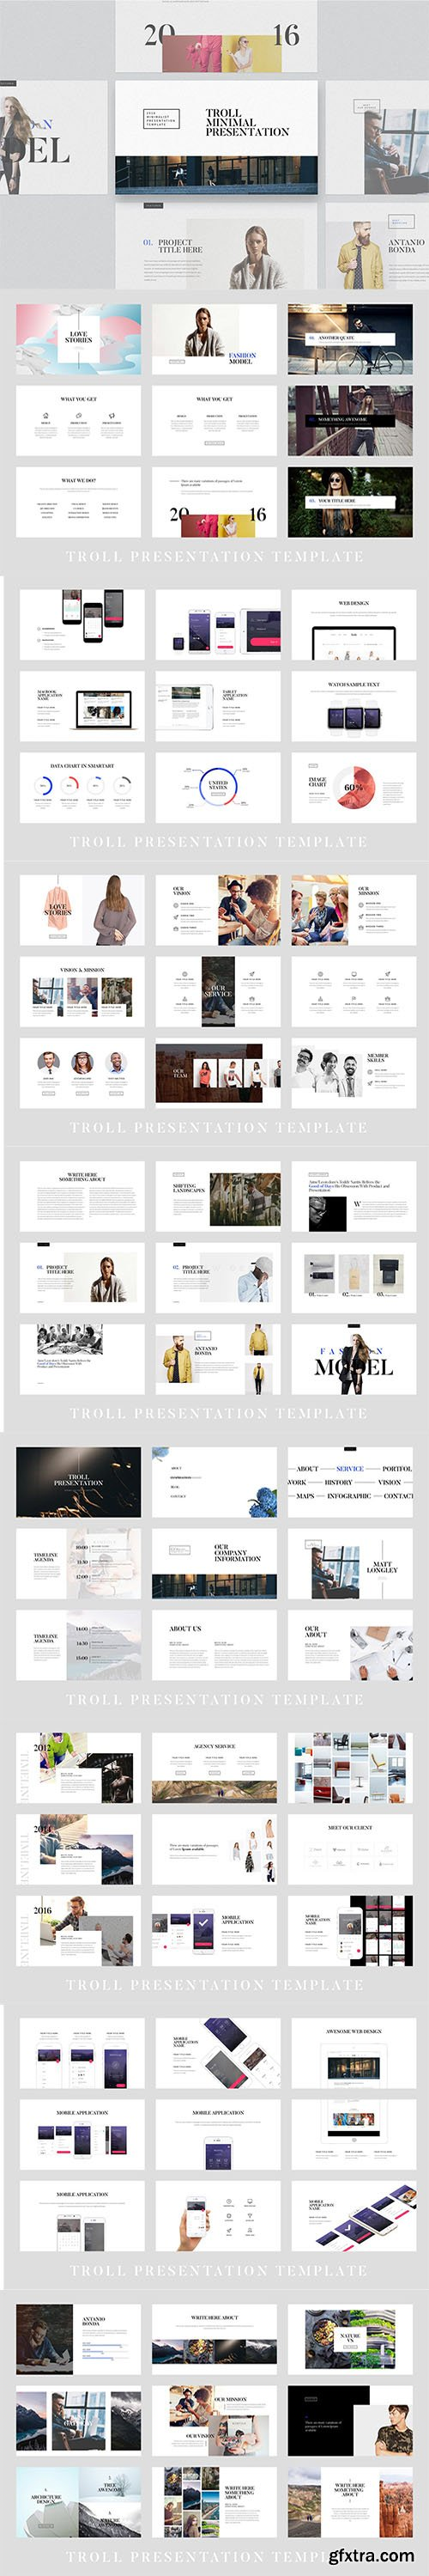 Troll - Powerpoint and Keynote Template